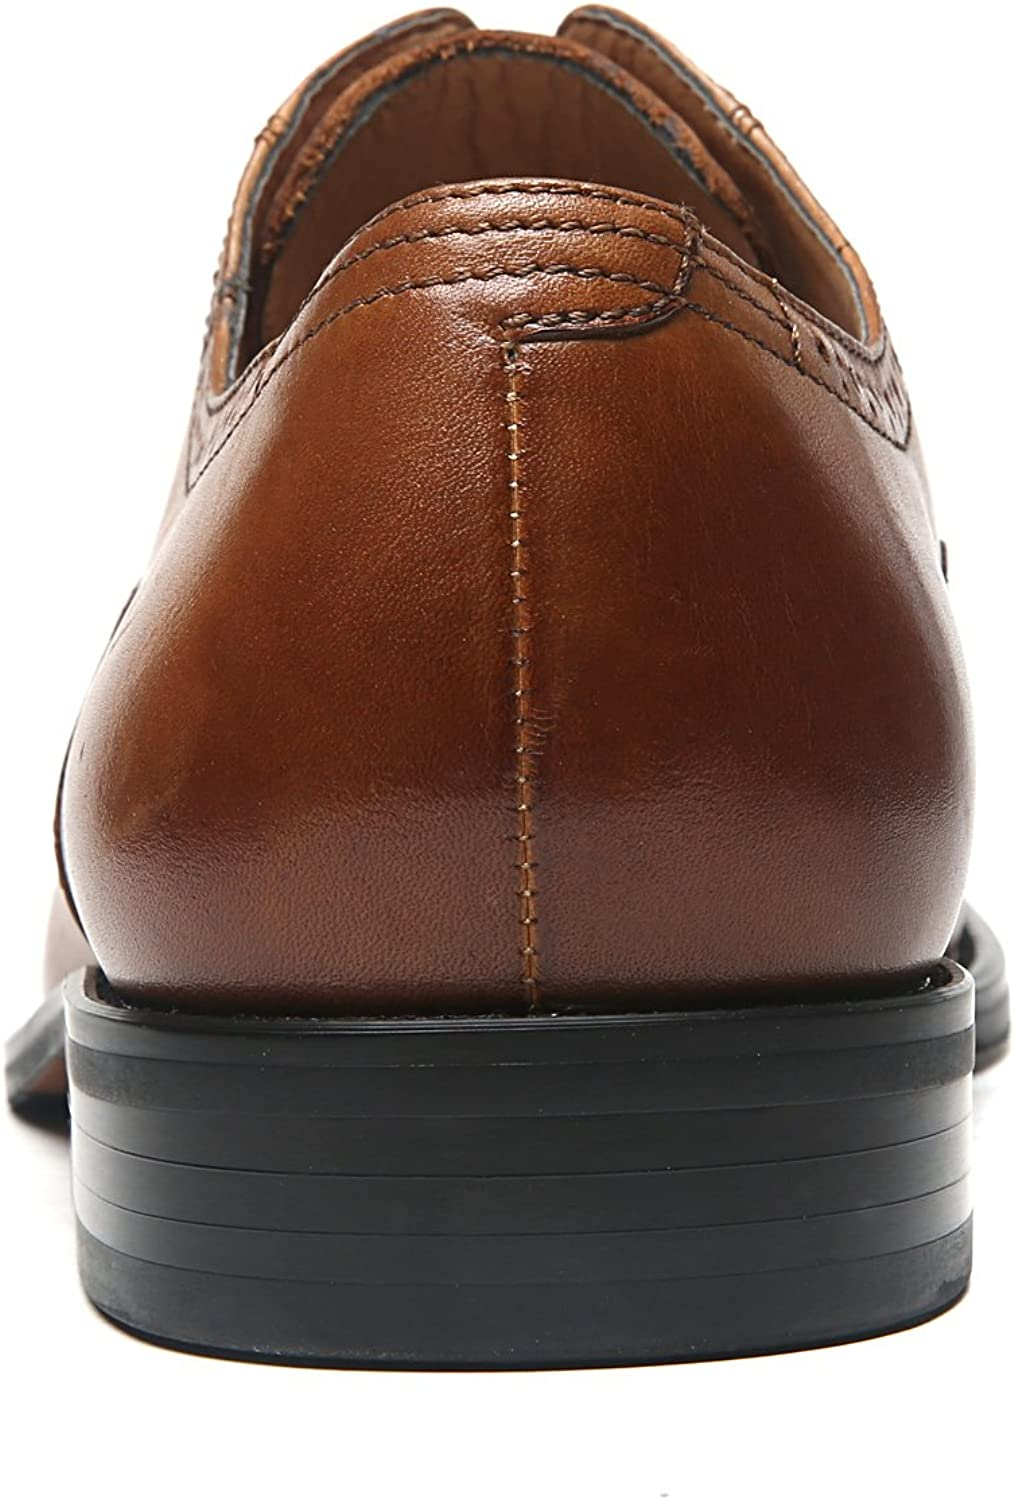 La Milano Mens Leather Cap Toe Lace up Oxford Dress Shoes Classic Modern Business Casual Shoes for Men